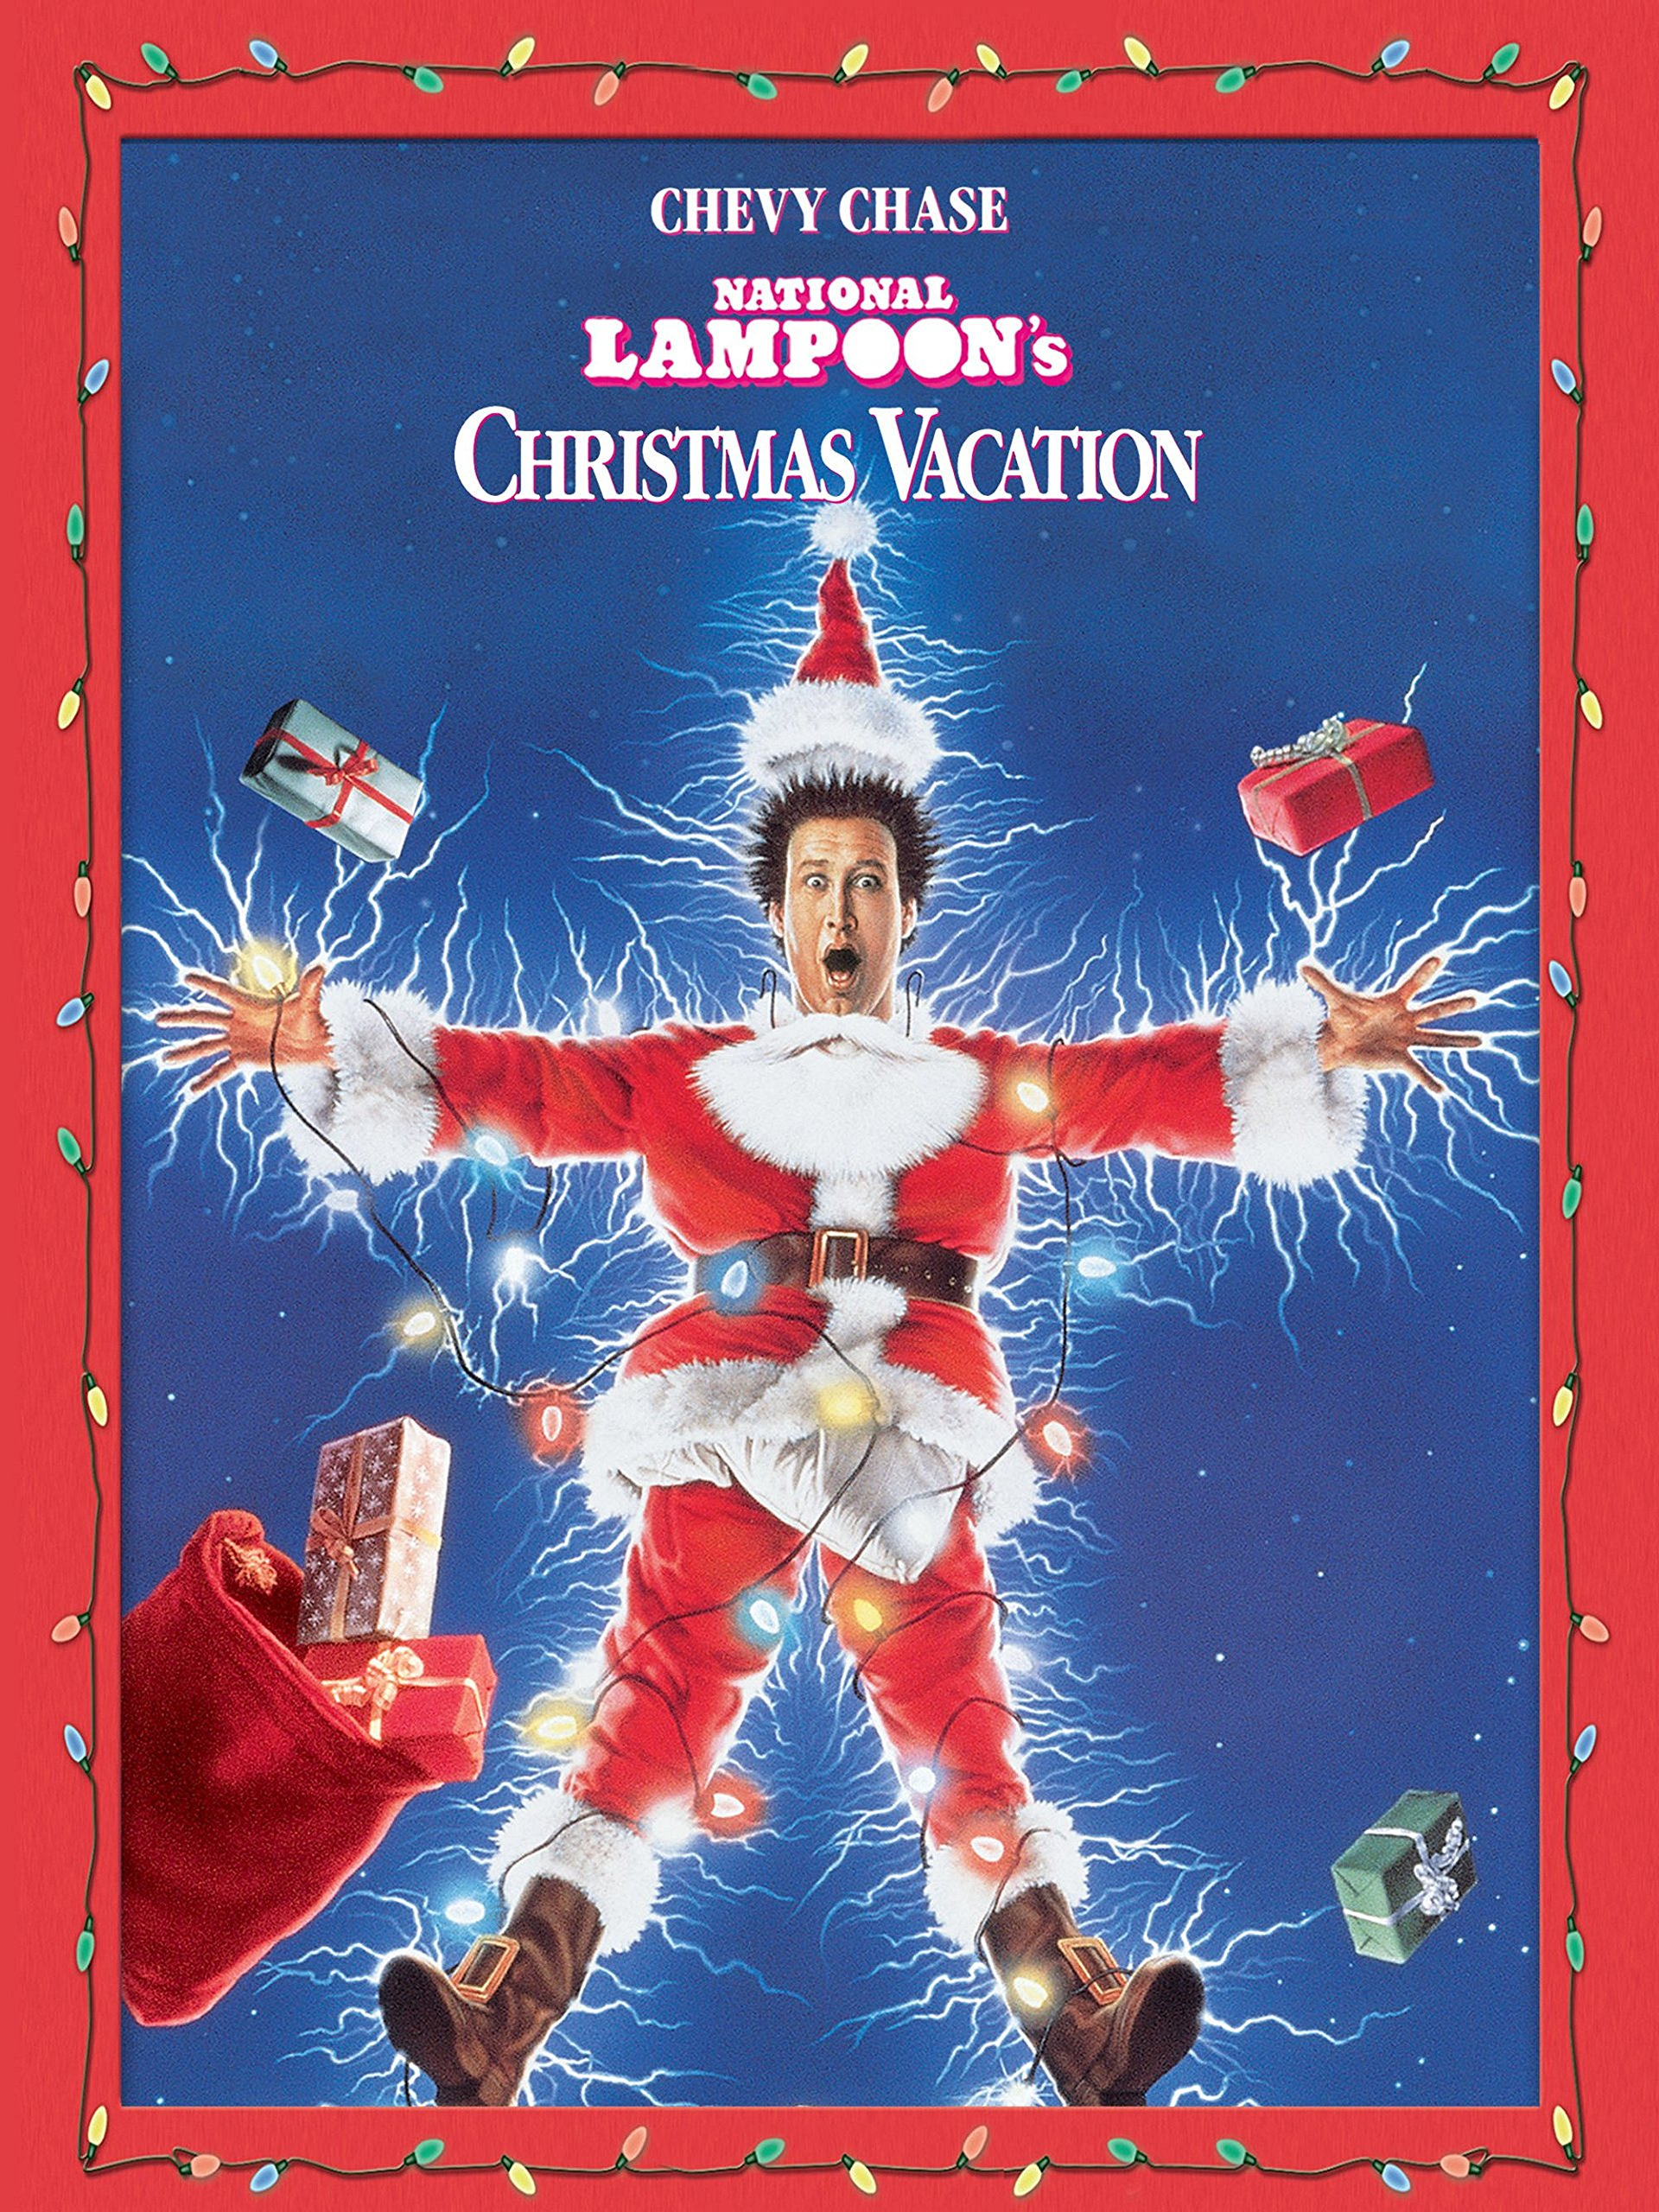 amazoncom national lampoons christmas vacation chevy chase beverly dangelo juliette lewis johnny galecki amazon digital services llc - National Lampoons Christmas Vacation Watch Online